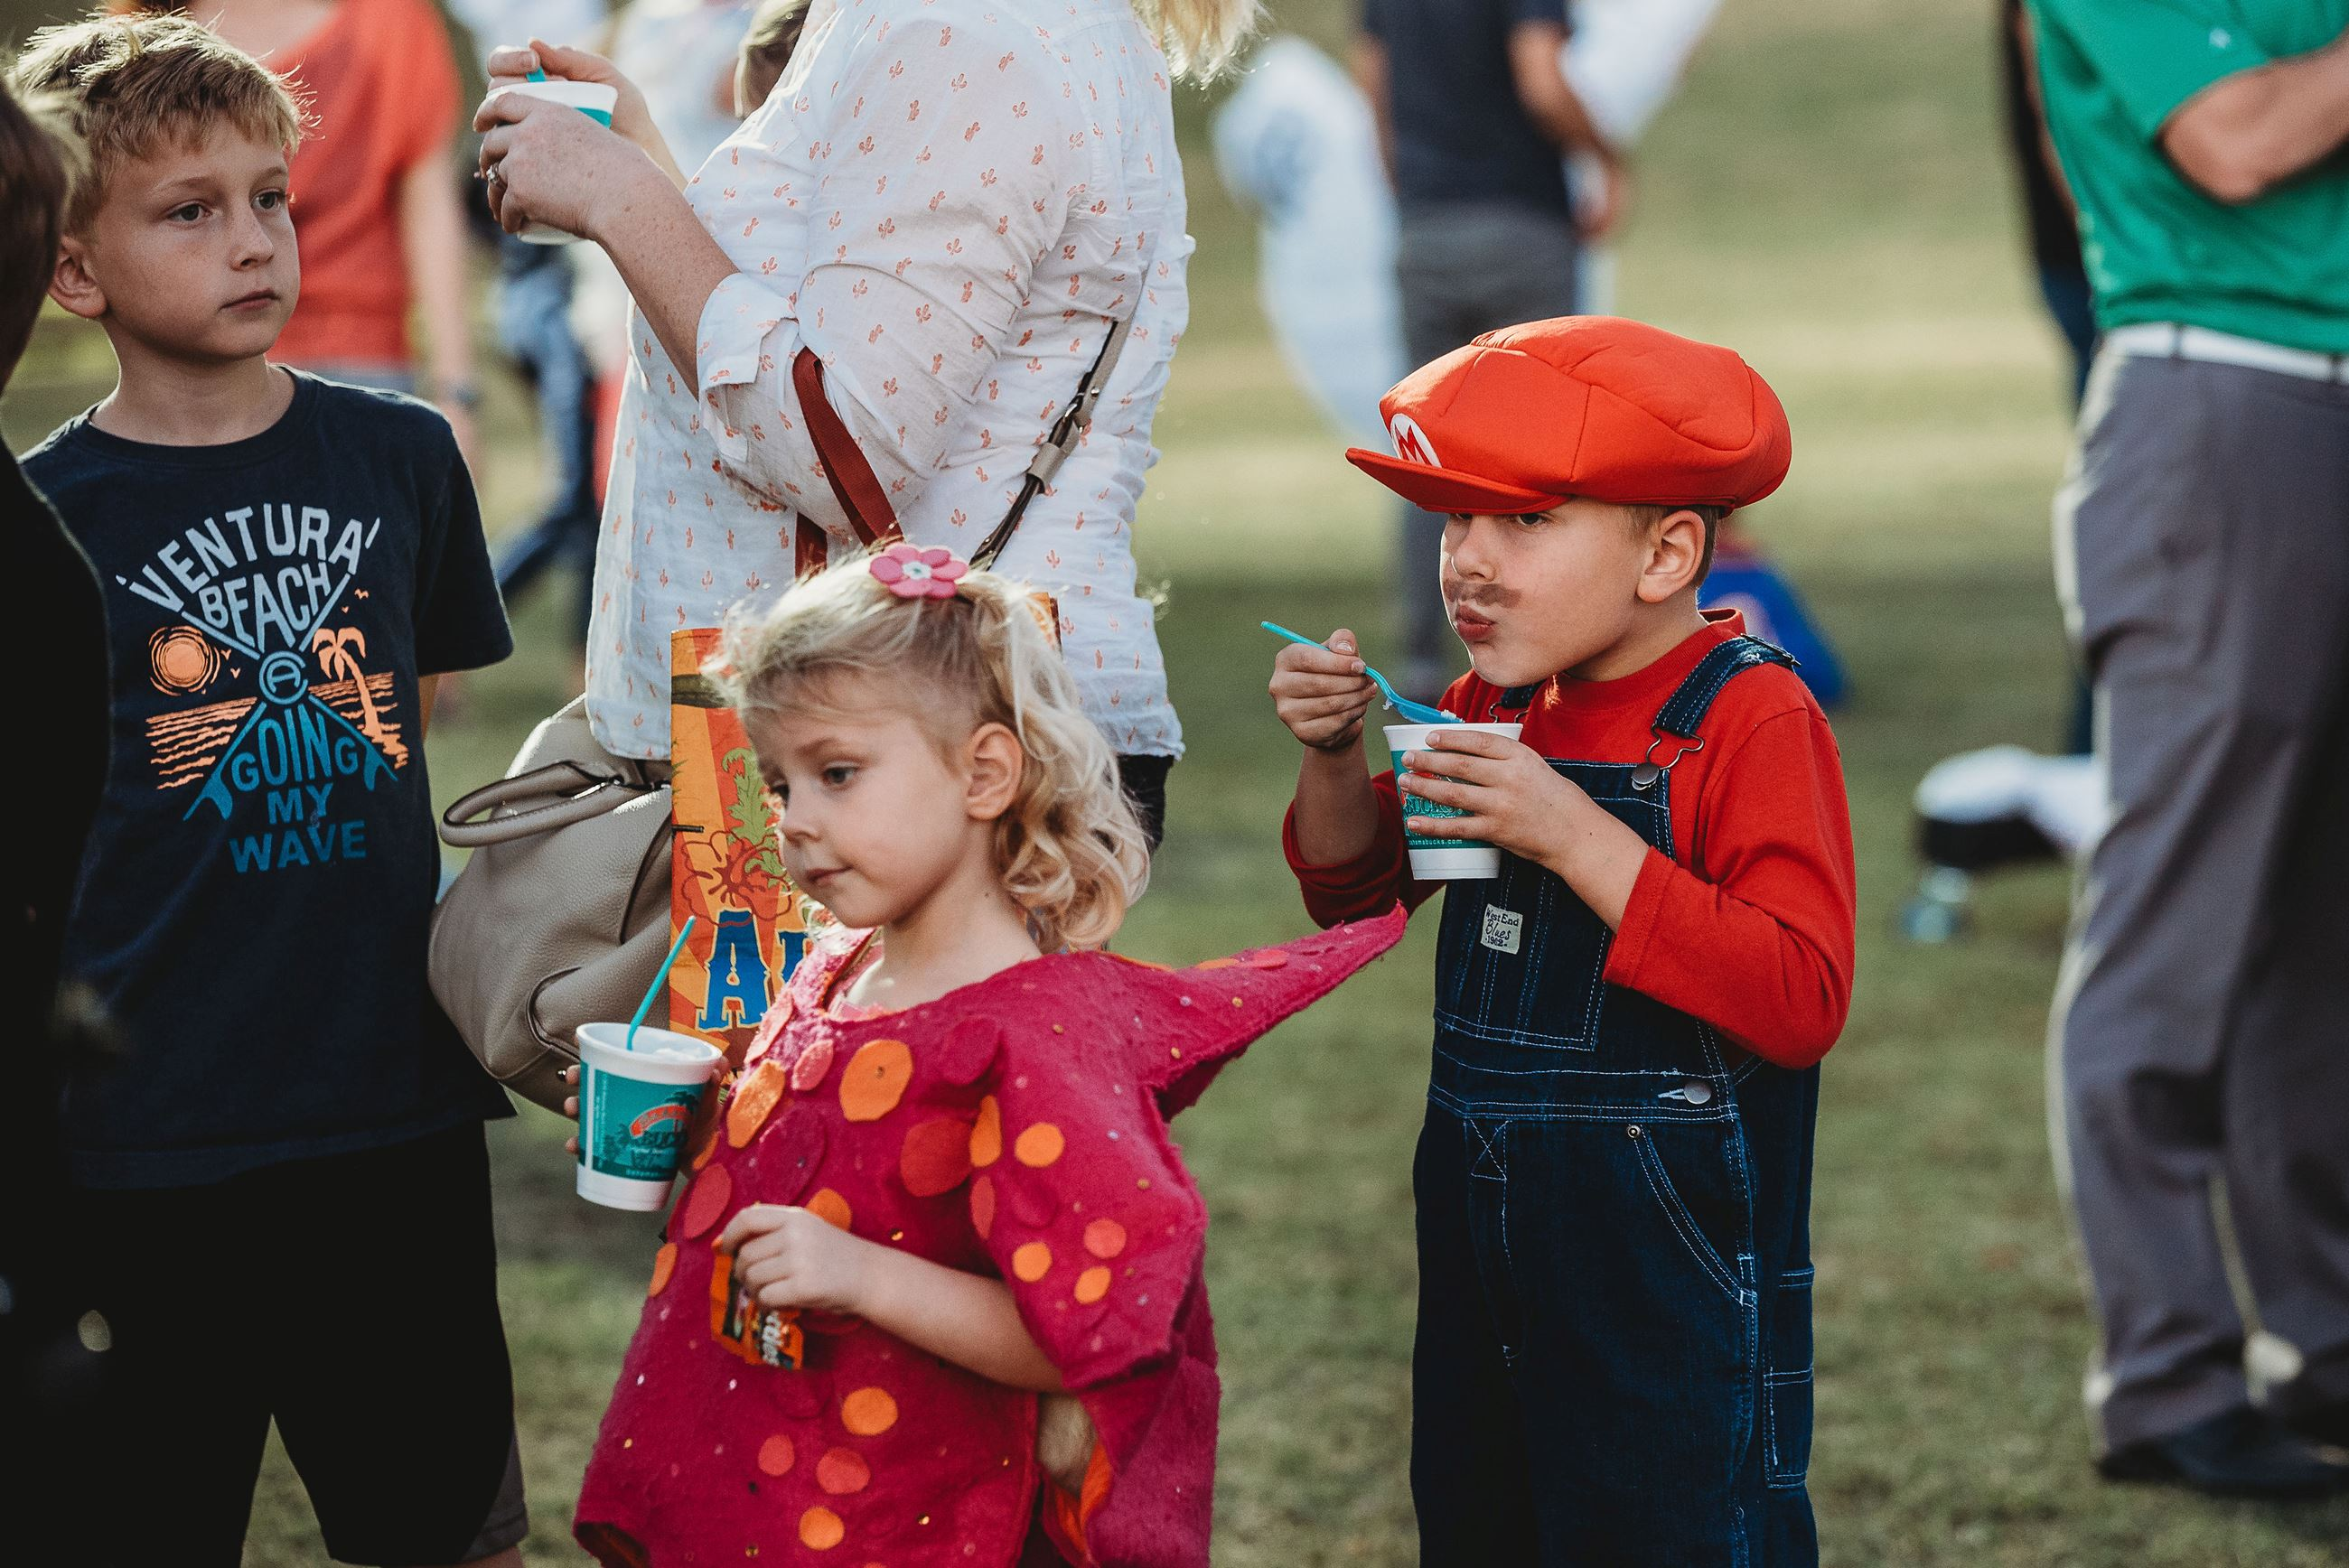 Little Boy Dressed as Mario and His Sister Eating Shaved Ice